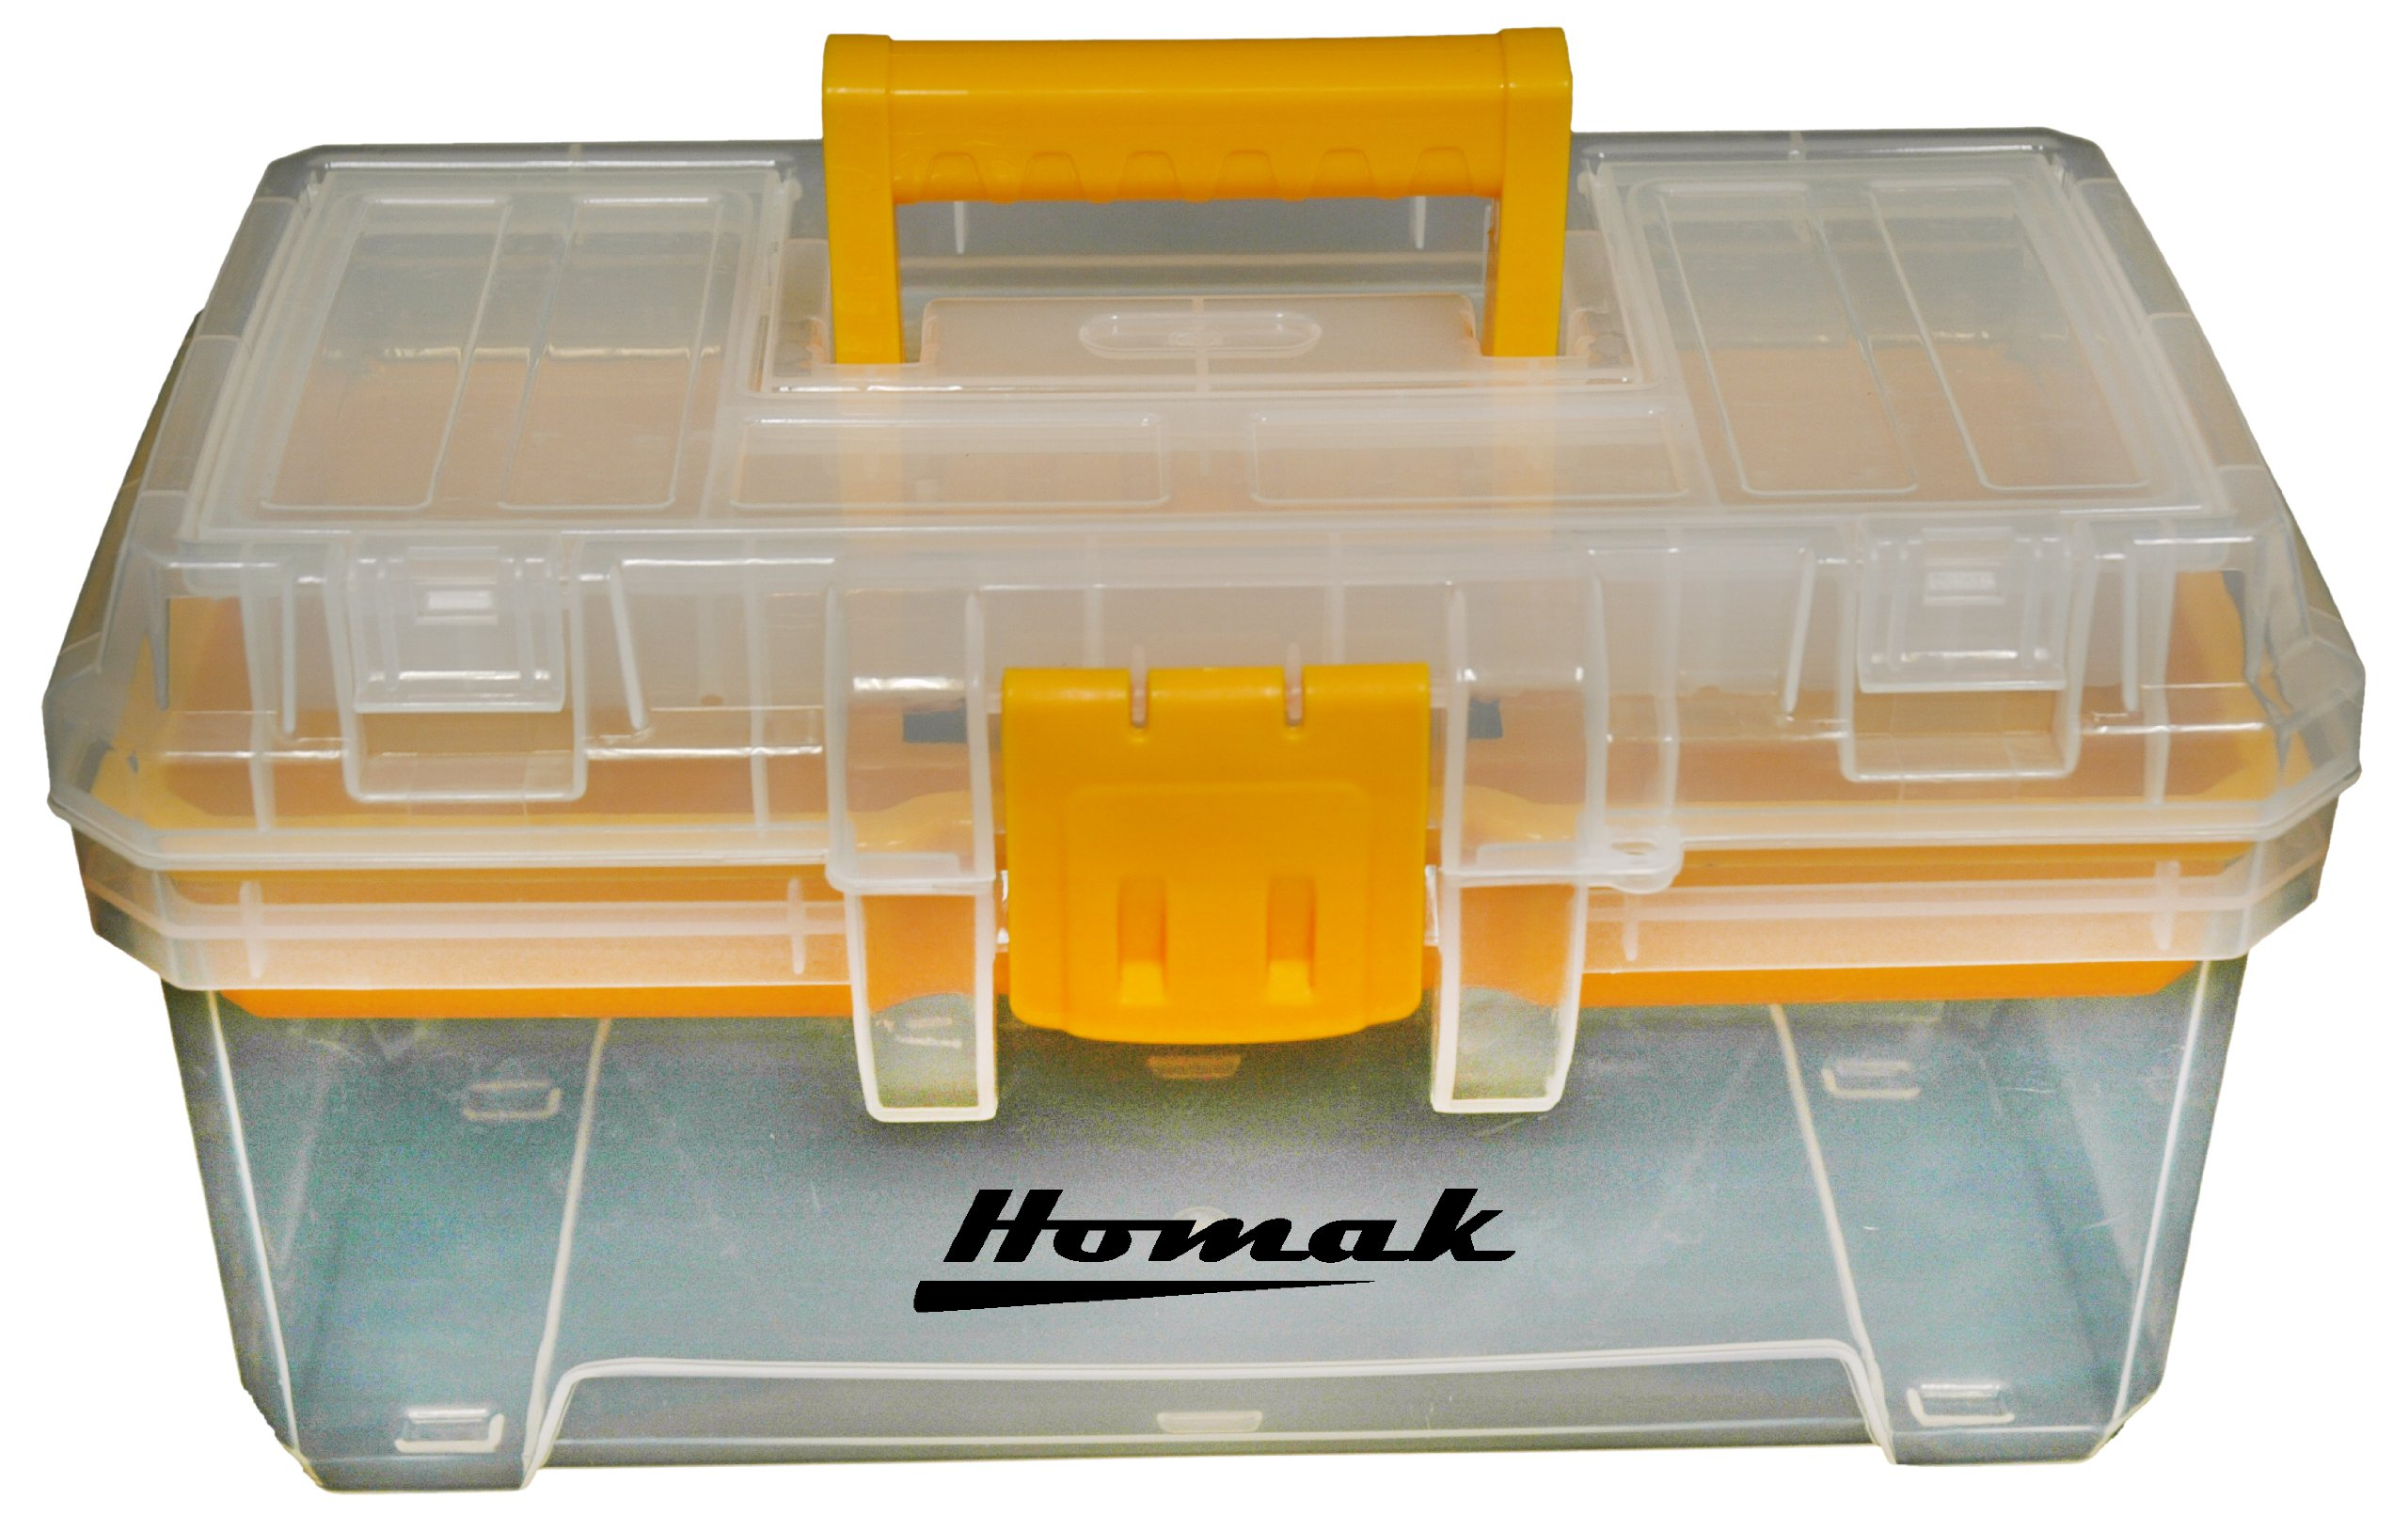 Homak 15-1/2-Inch Plastic Transparent Toolbox with Tray, TP00115088 by HMC Holdings LLC - Homak